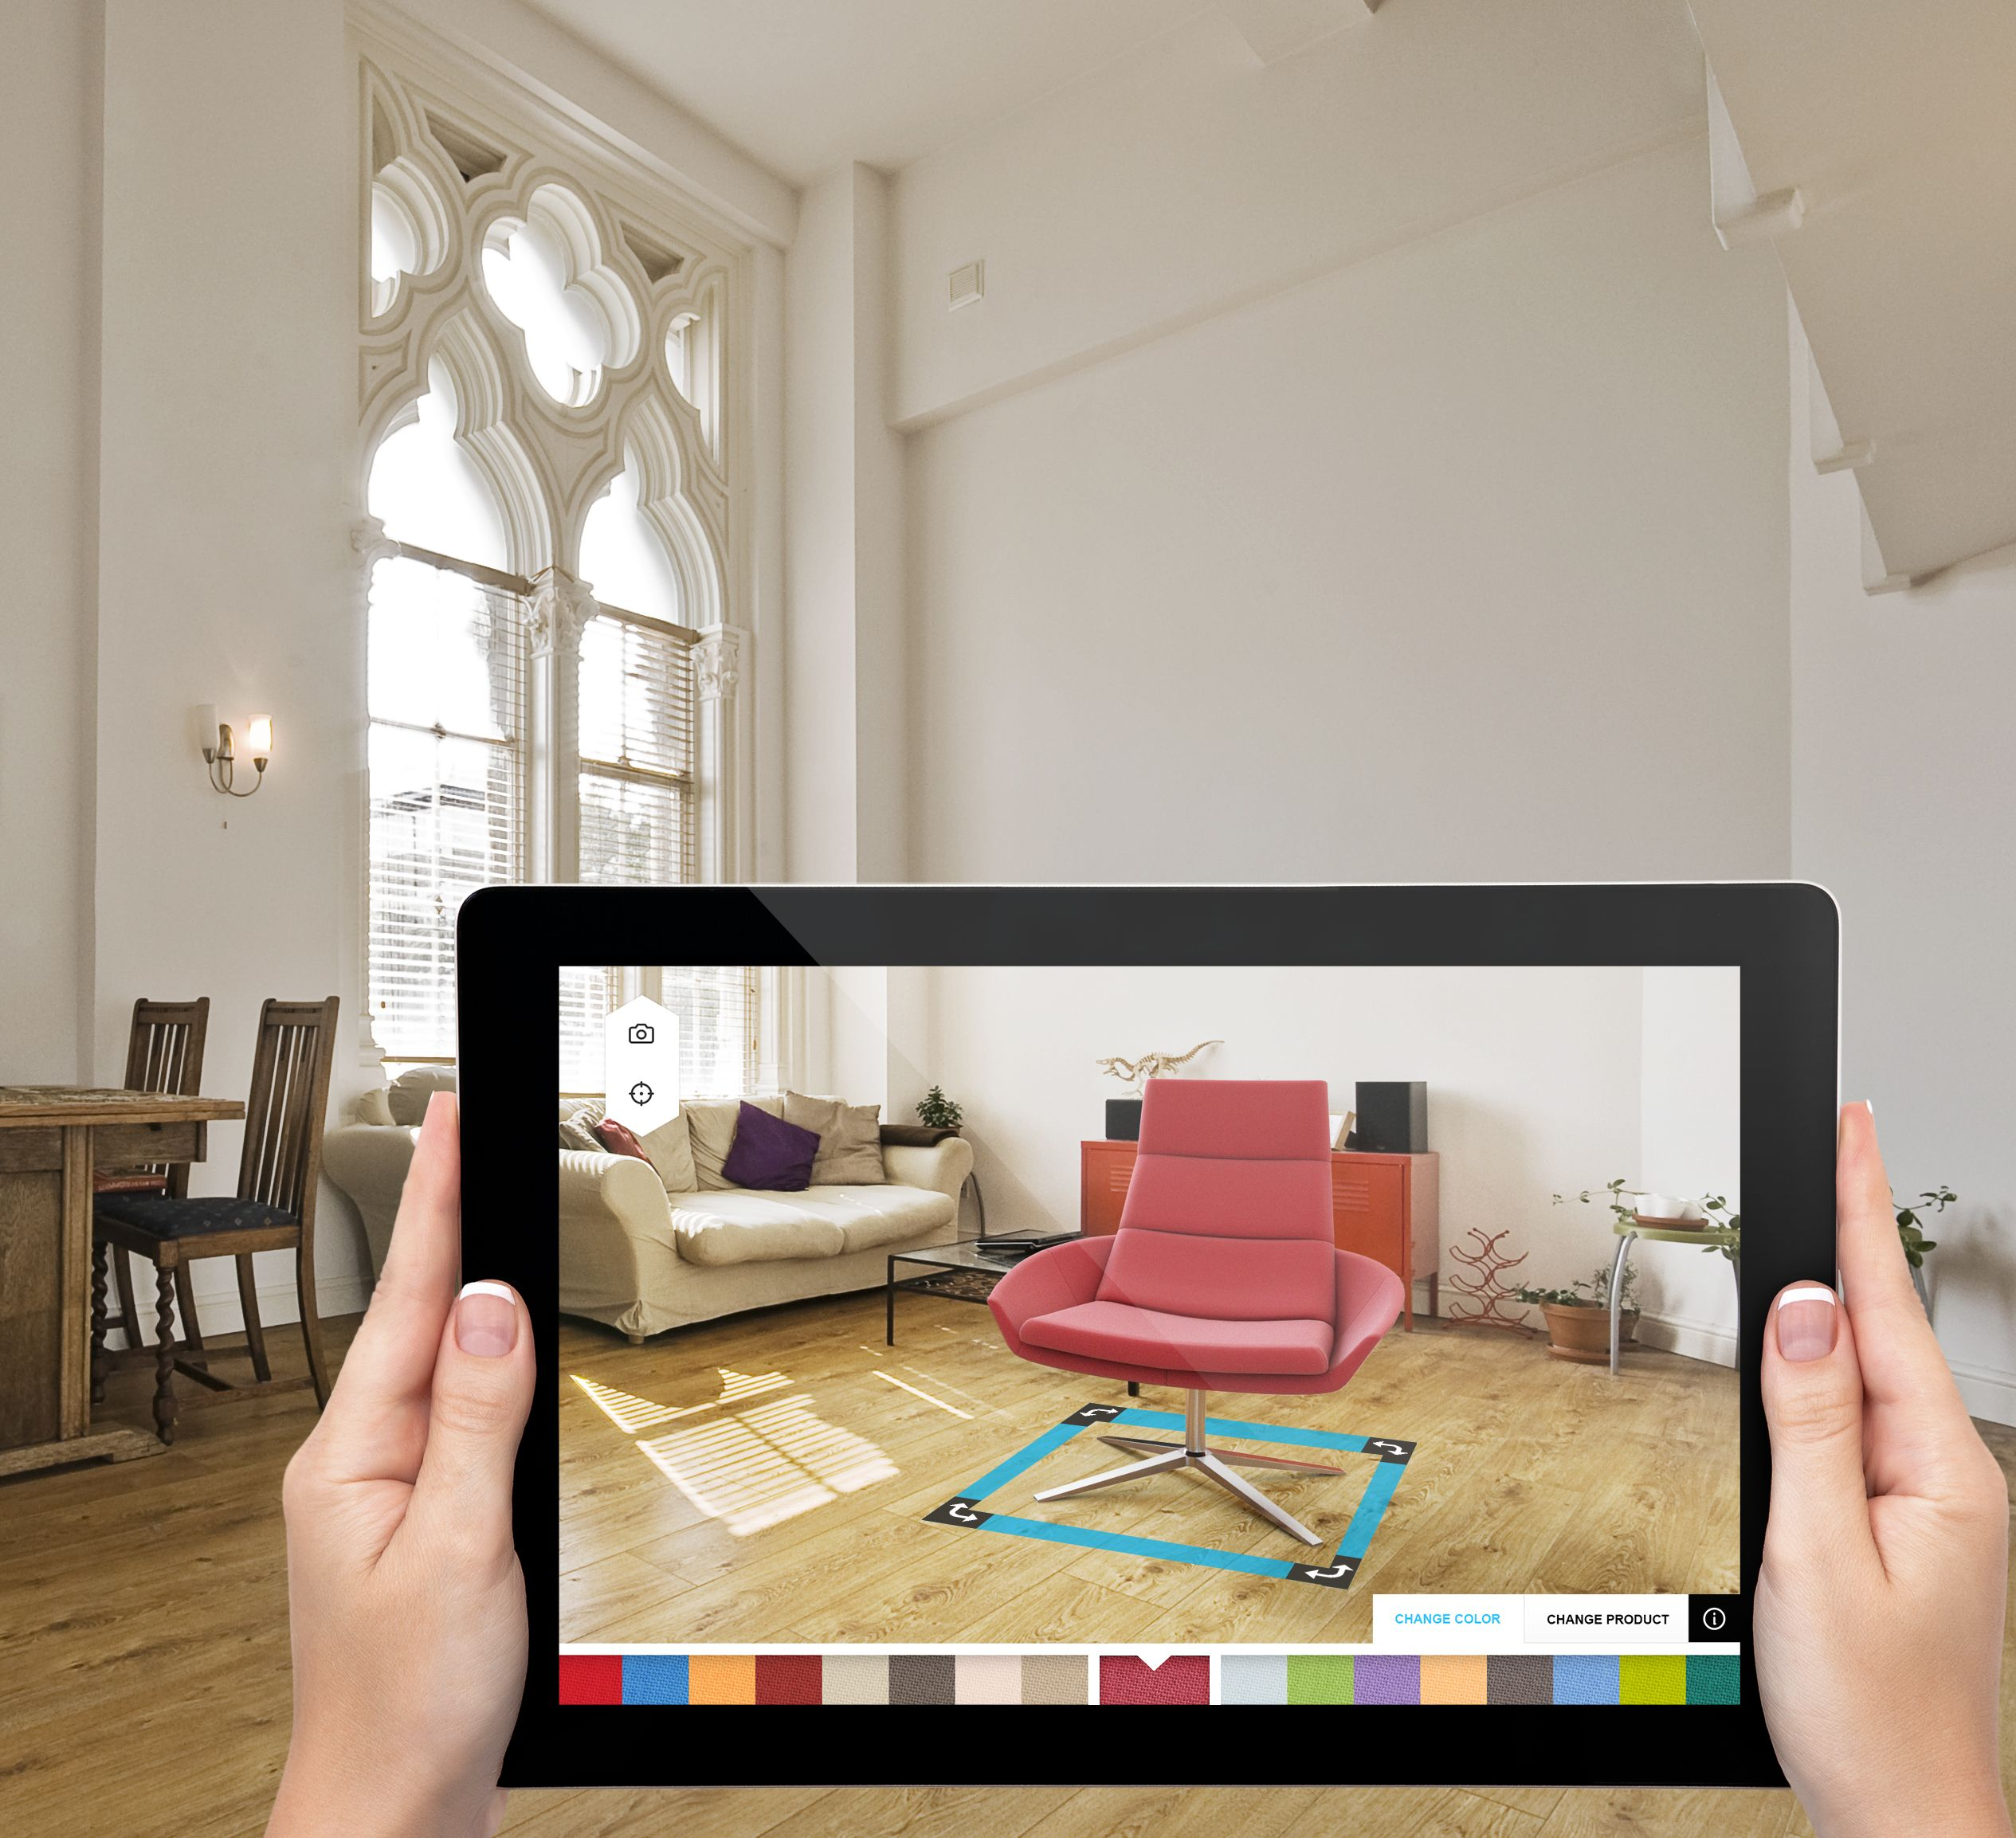 Designing Your Home Just Got To The Next Level: Augmented Reality In  Amikasa Allows You